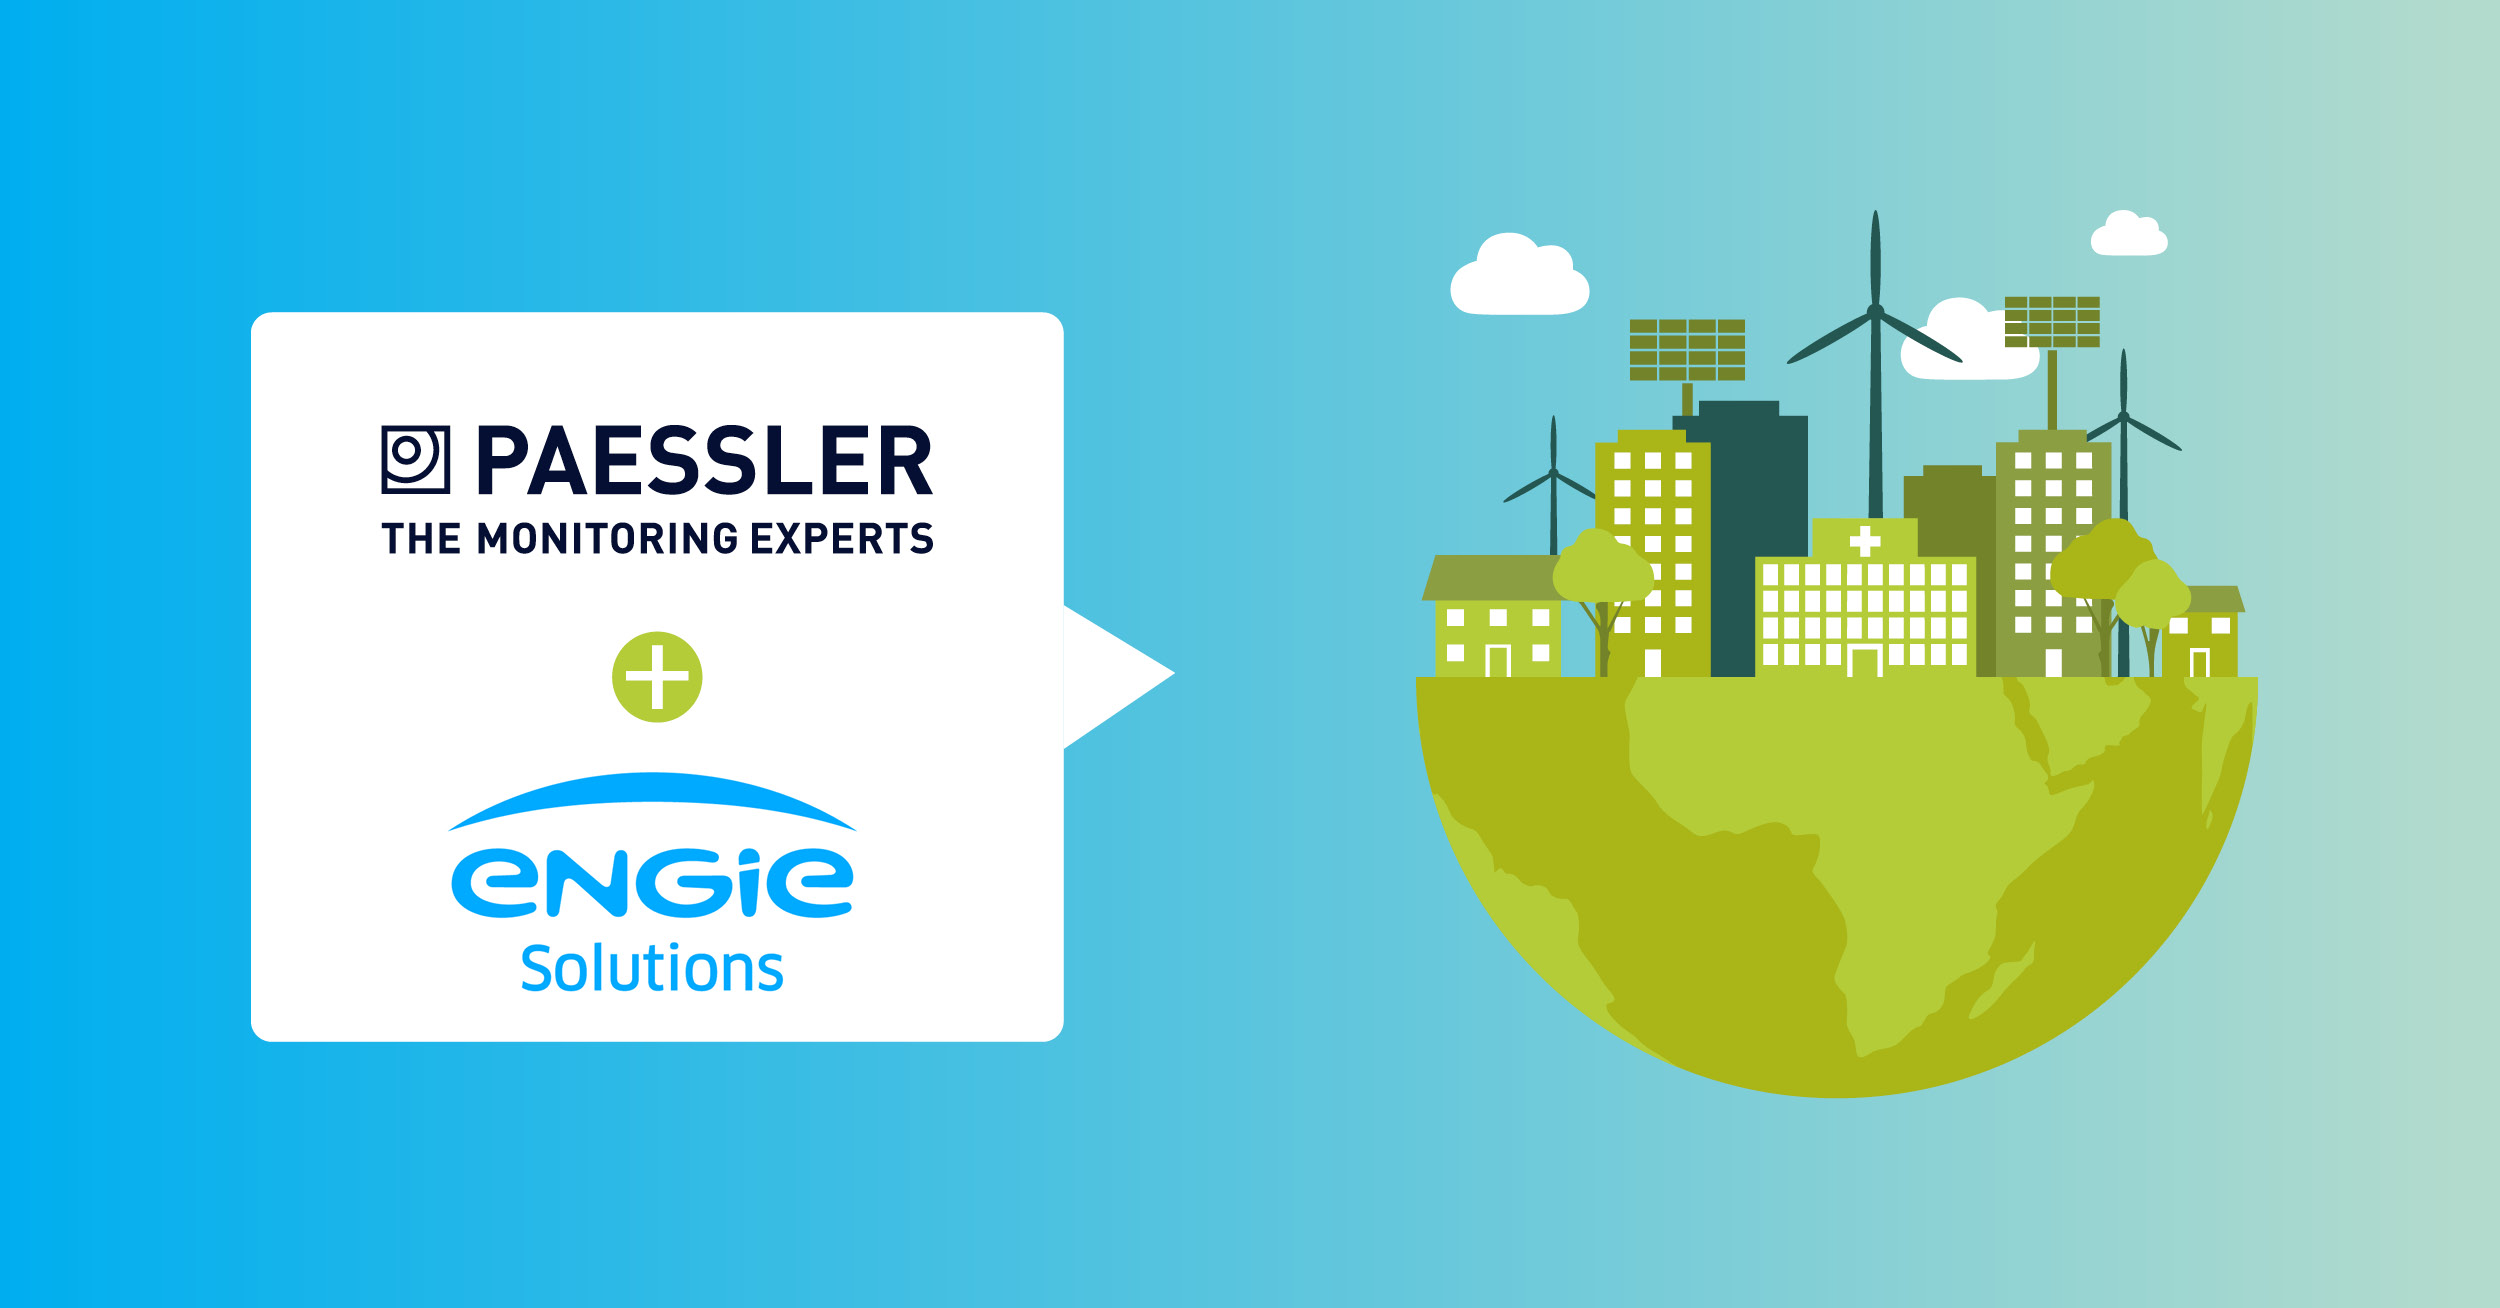 engie solutions improves monitoring of its large it and iot infrastructure with prtg enterprise monitor